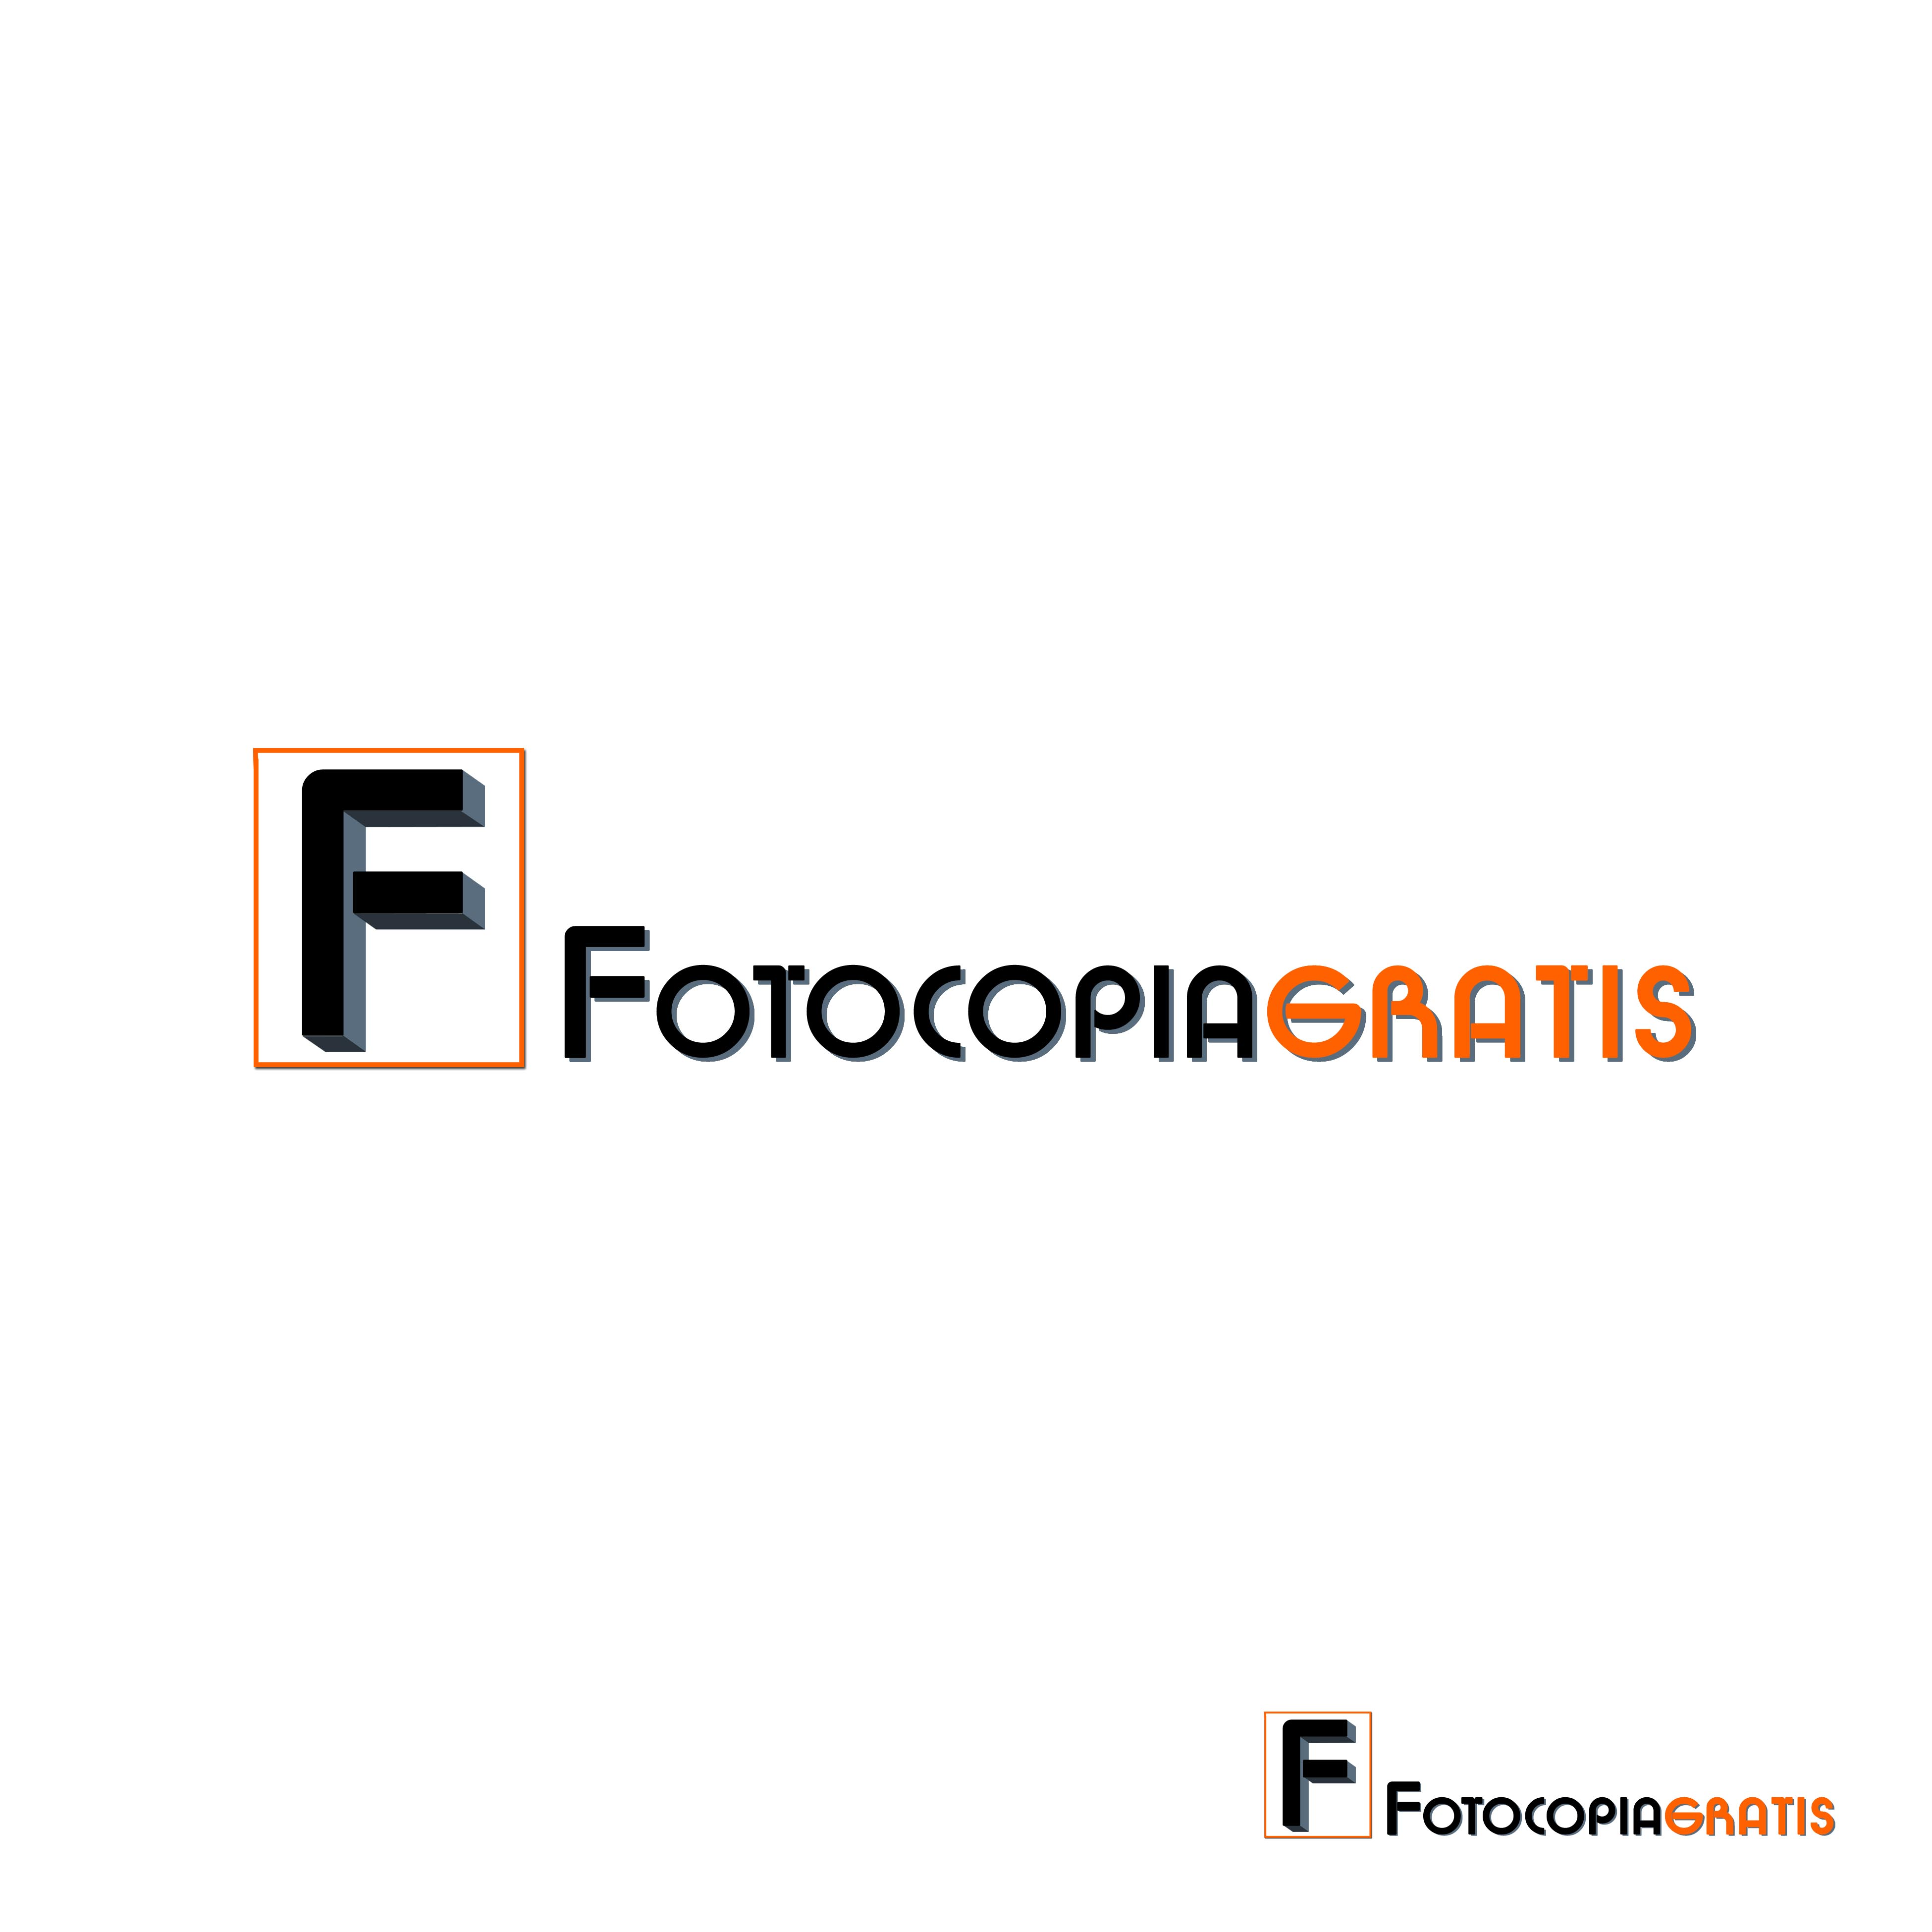 Logo Design by Cesar III Sotto - Entry No. 41 in the Logo Design Contest Inspiring Logo Design for Fotocopiagratis.